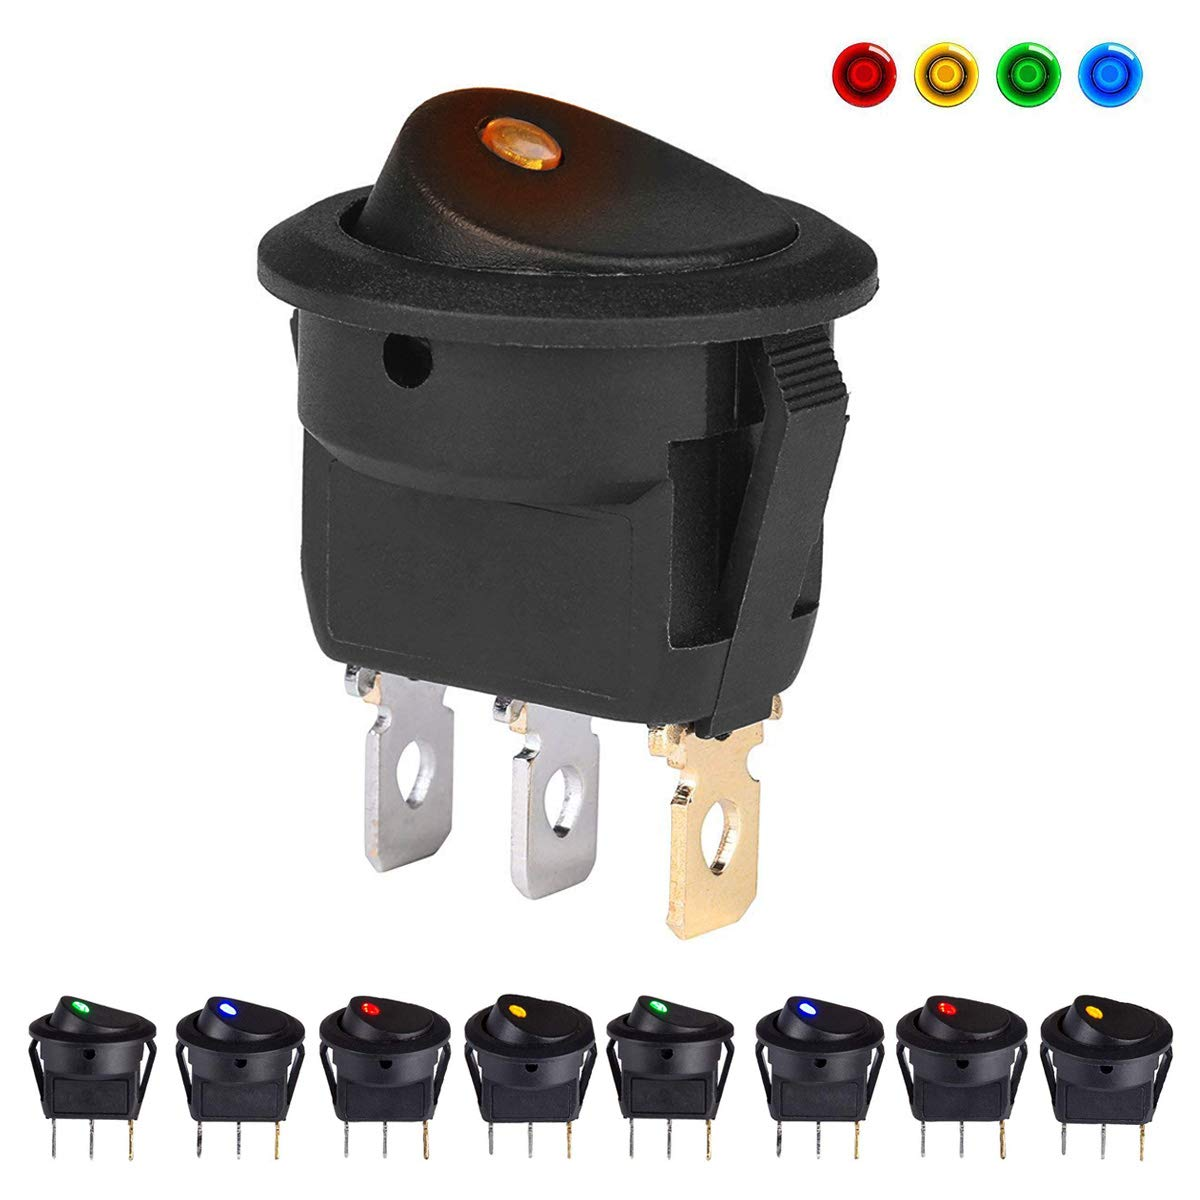 8 Pcs DC 12V 20A Car Boat Truck Trailer Marine Auto Illuminated Round Rocker Switch Button ON OFF Control Toggle Switch SPST with 4 color LED Dot Light